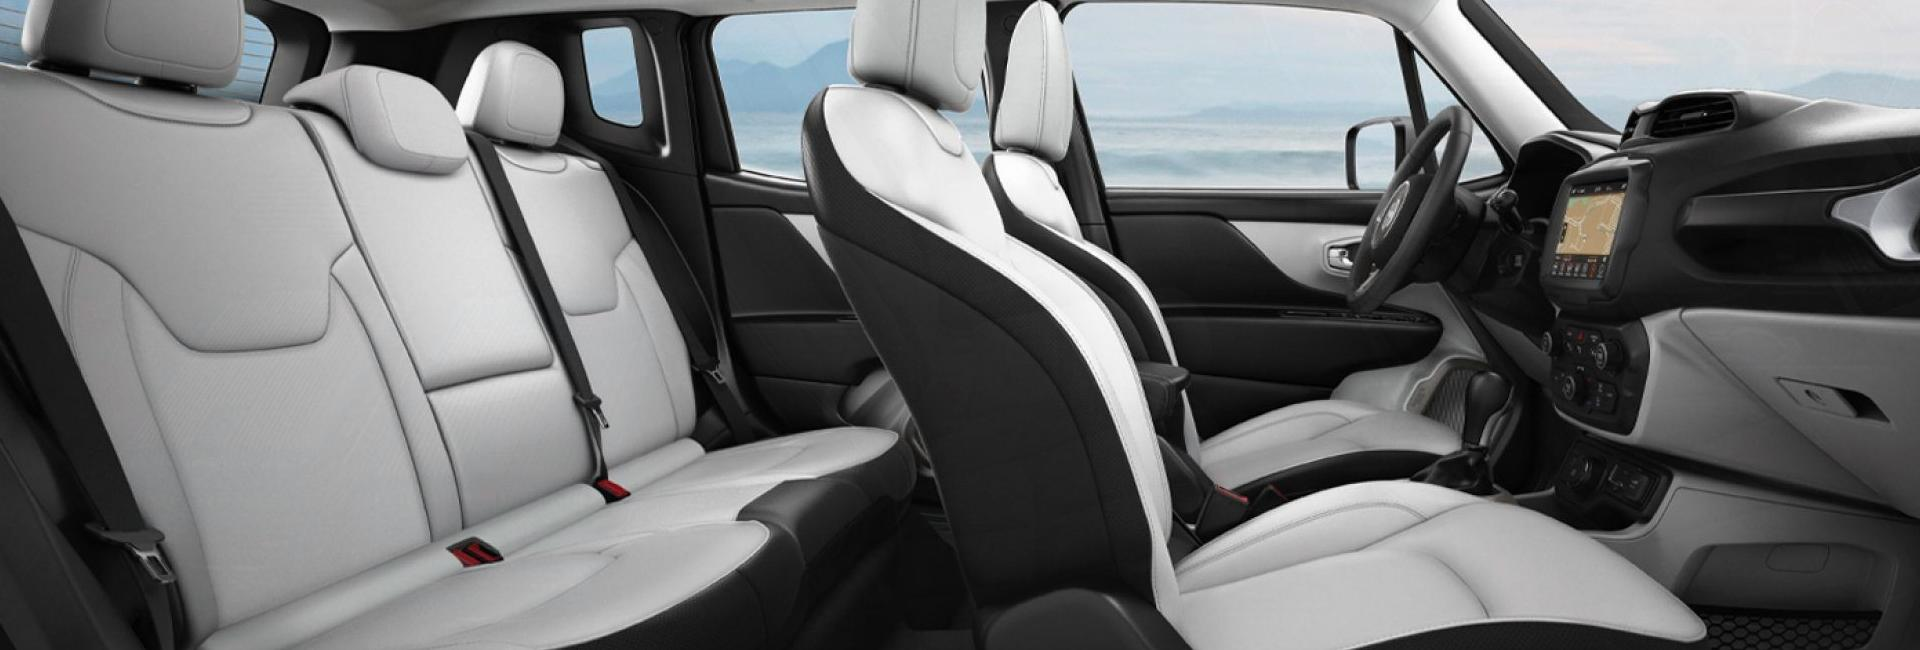 Interior image of the 2020 Jeep Renegade.